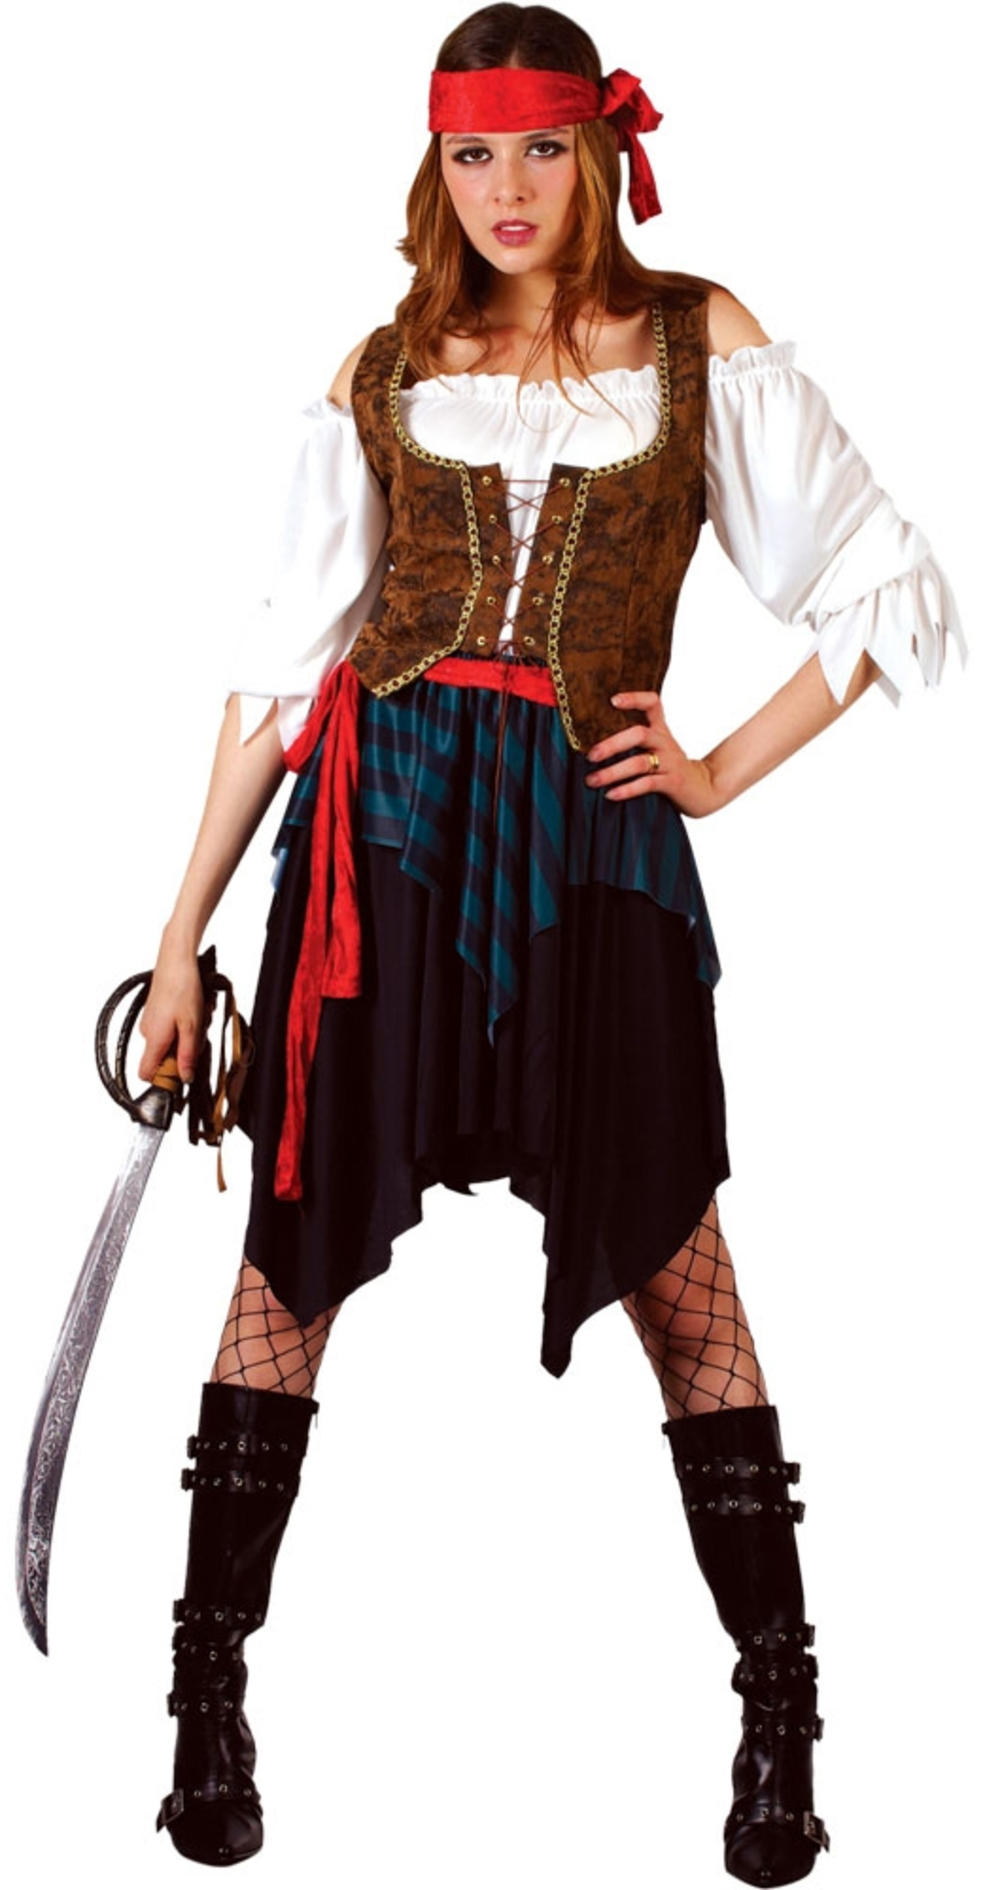 Caribbean Pirate Ladies Fancy Dress Buccaneer Adults Halloween Costume Outfit